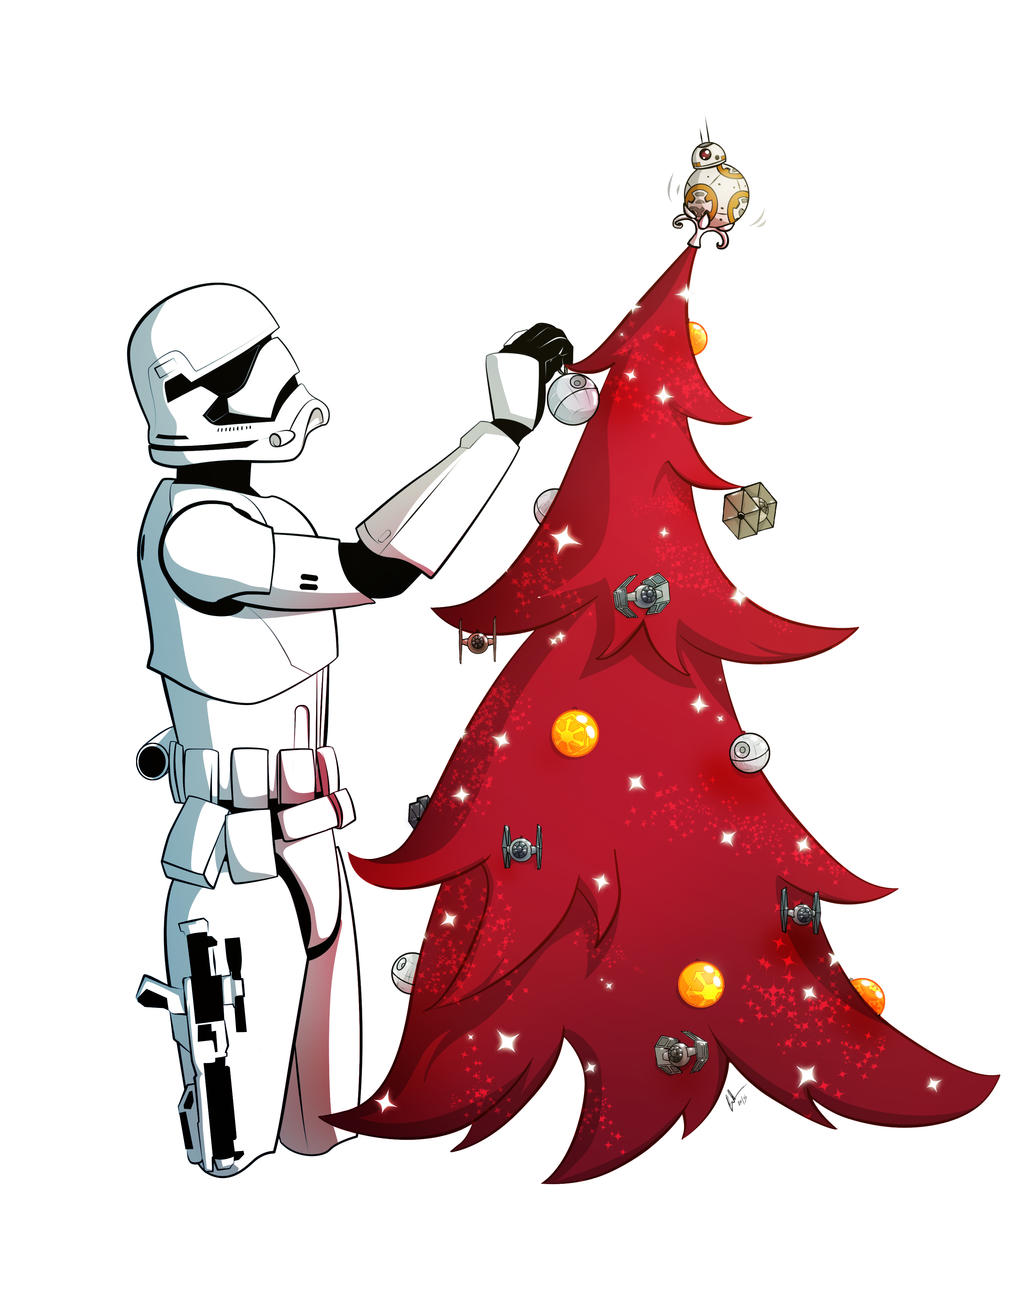 a merry star wars christmas by kilowhat on deviantart